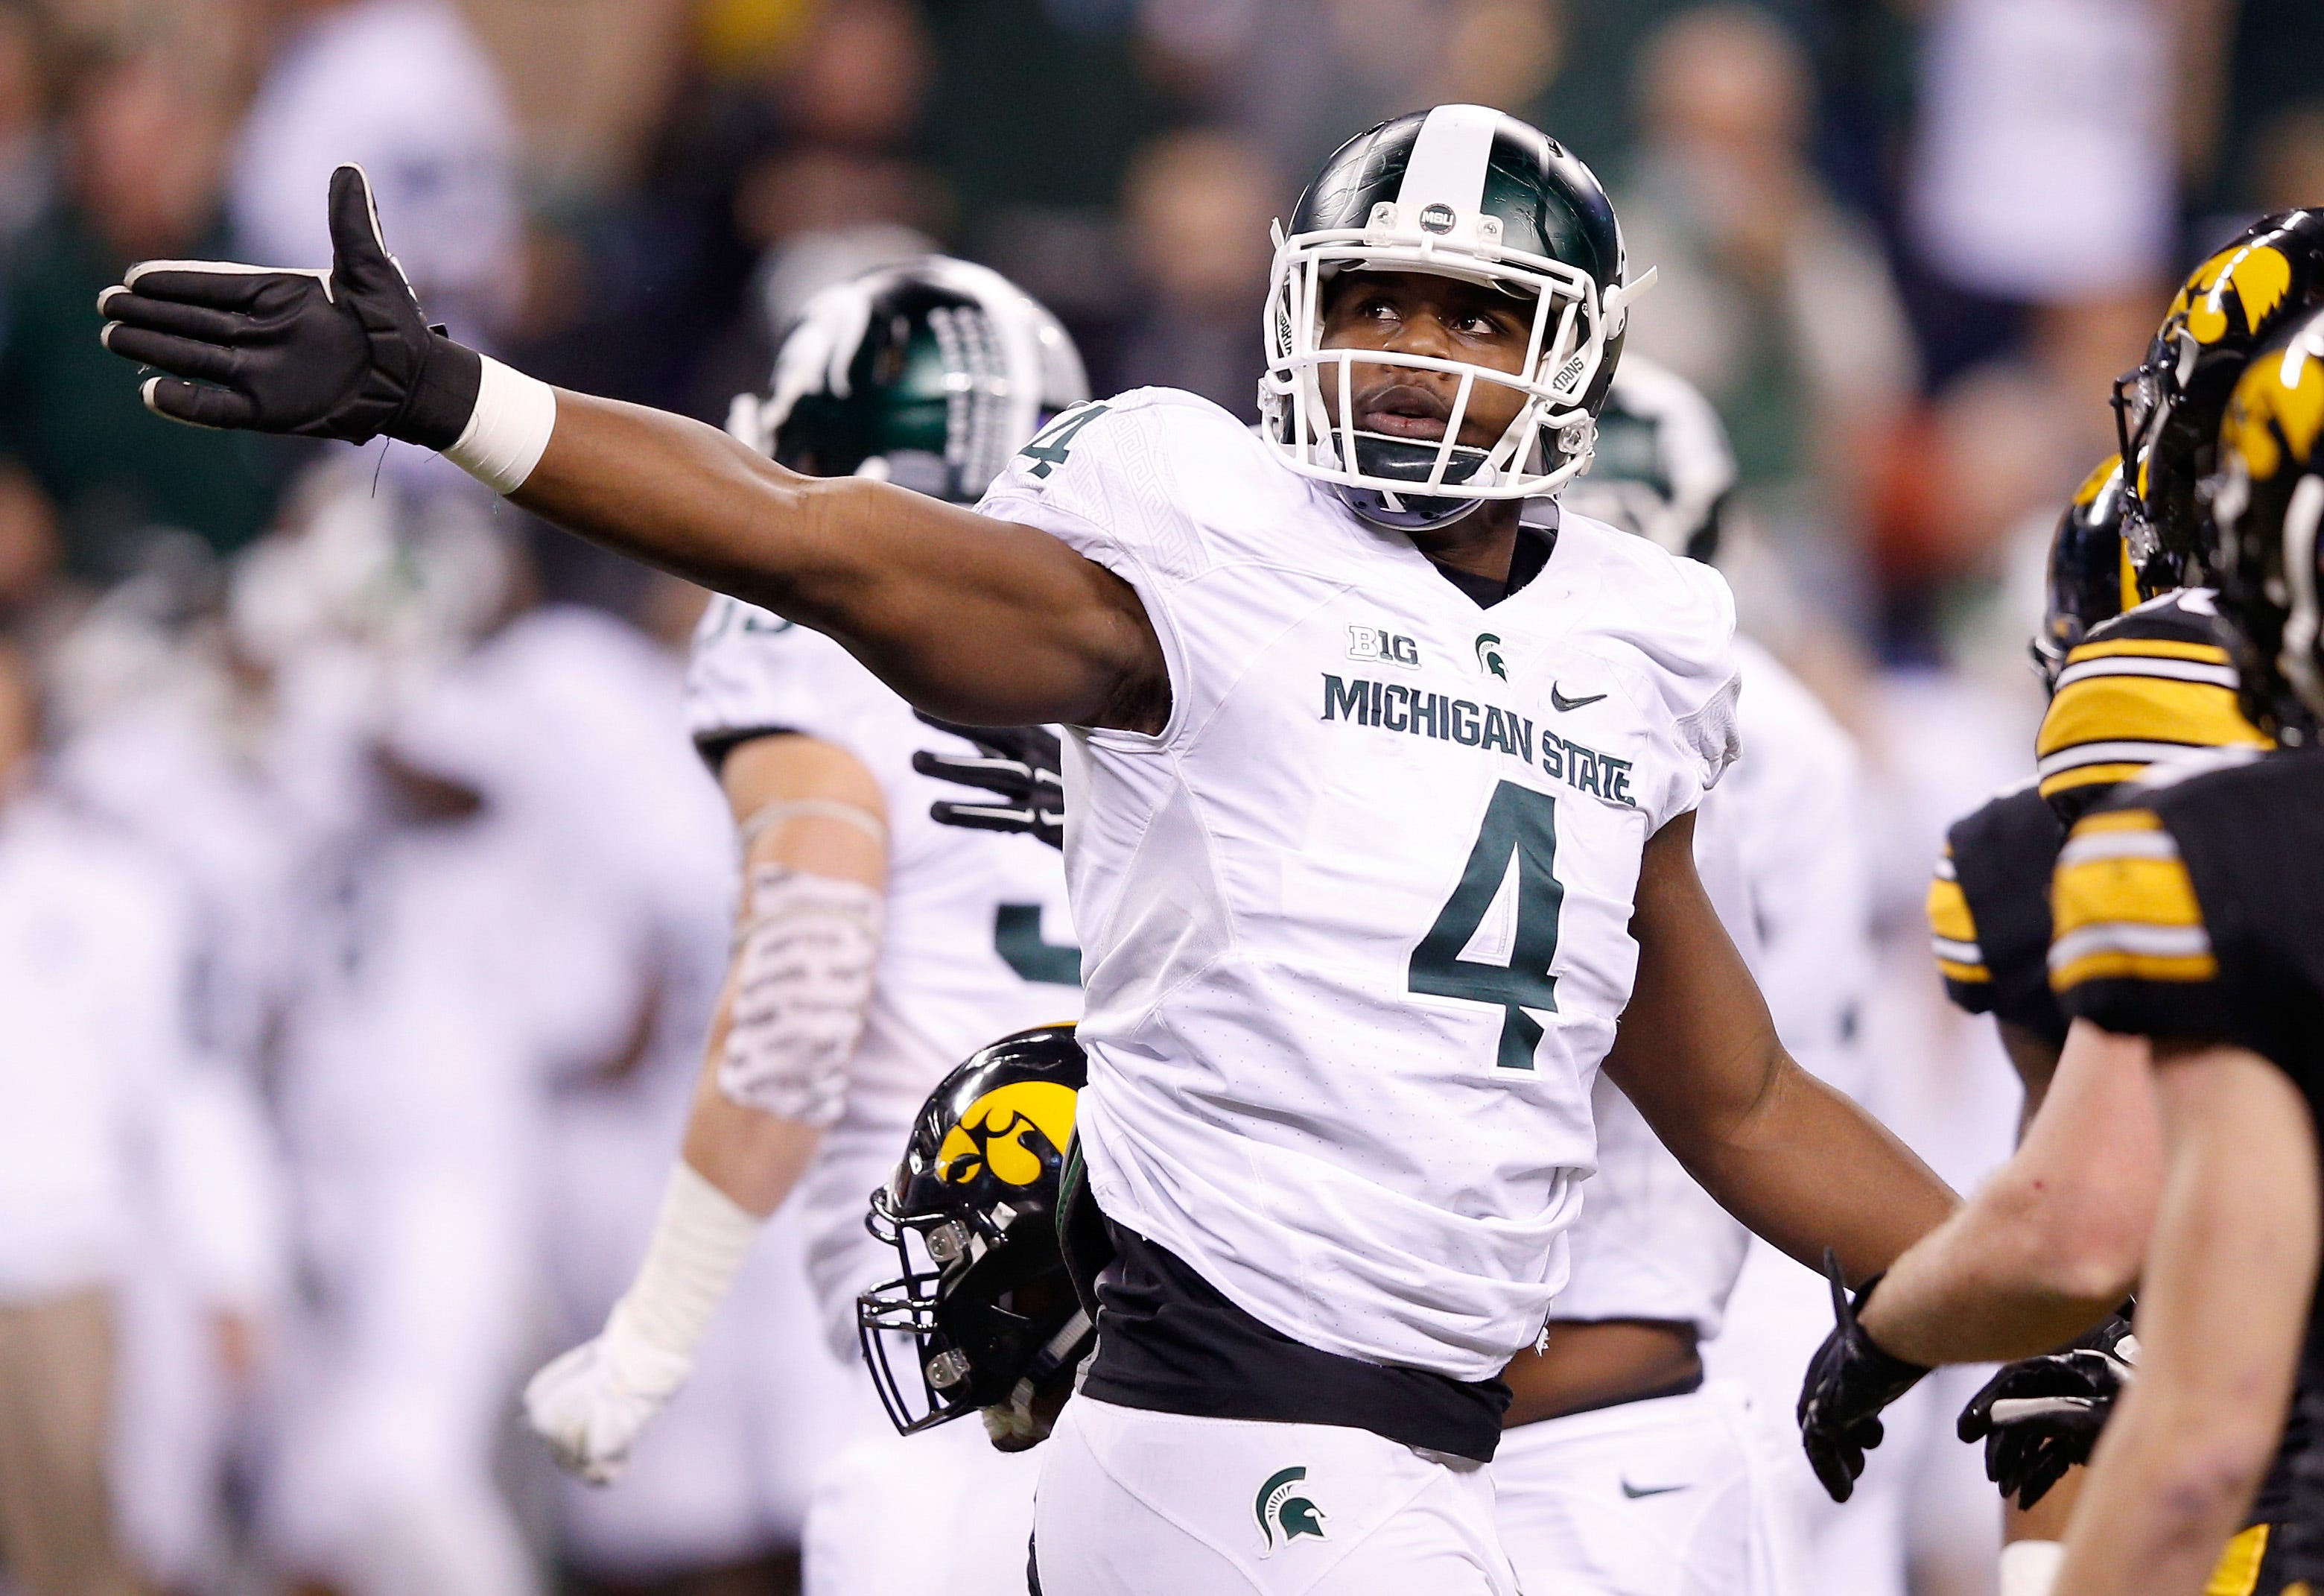 Could Malik McDowell or Chris Wormley fall to Lions in Round 2?